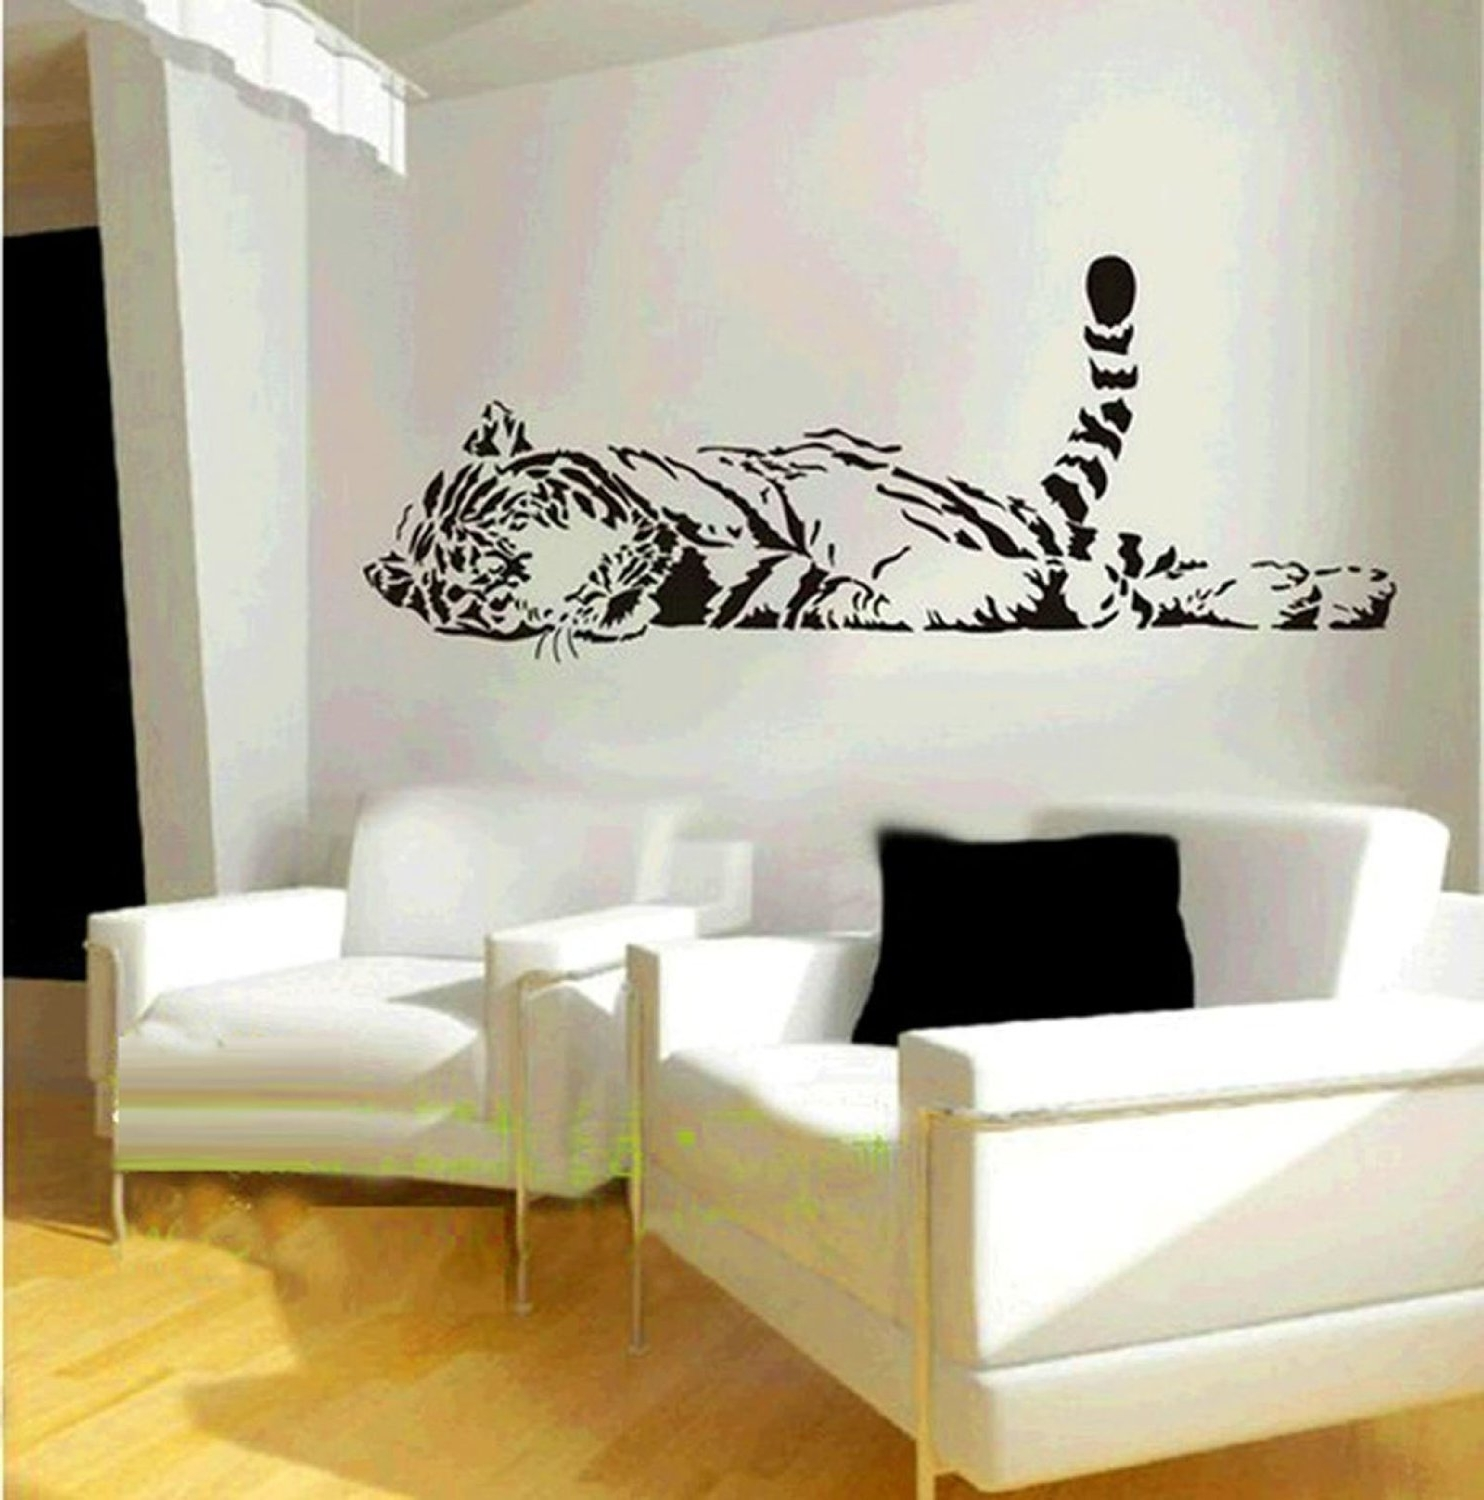 Vinyl Stickers Wall Accents Within 2017 Amazon: Animal Wild Zoo Lying Tail Up Tiger Wall Decal Sticker (Gallery 15 of 15)